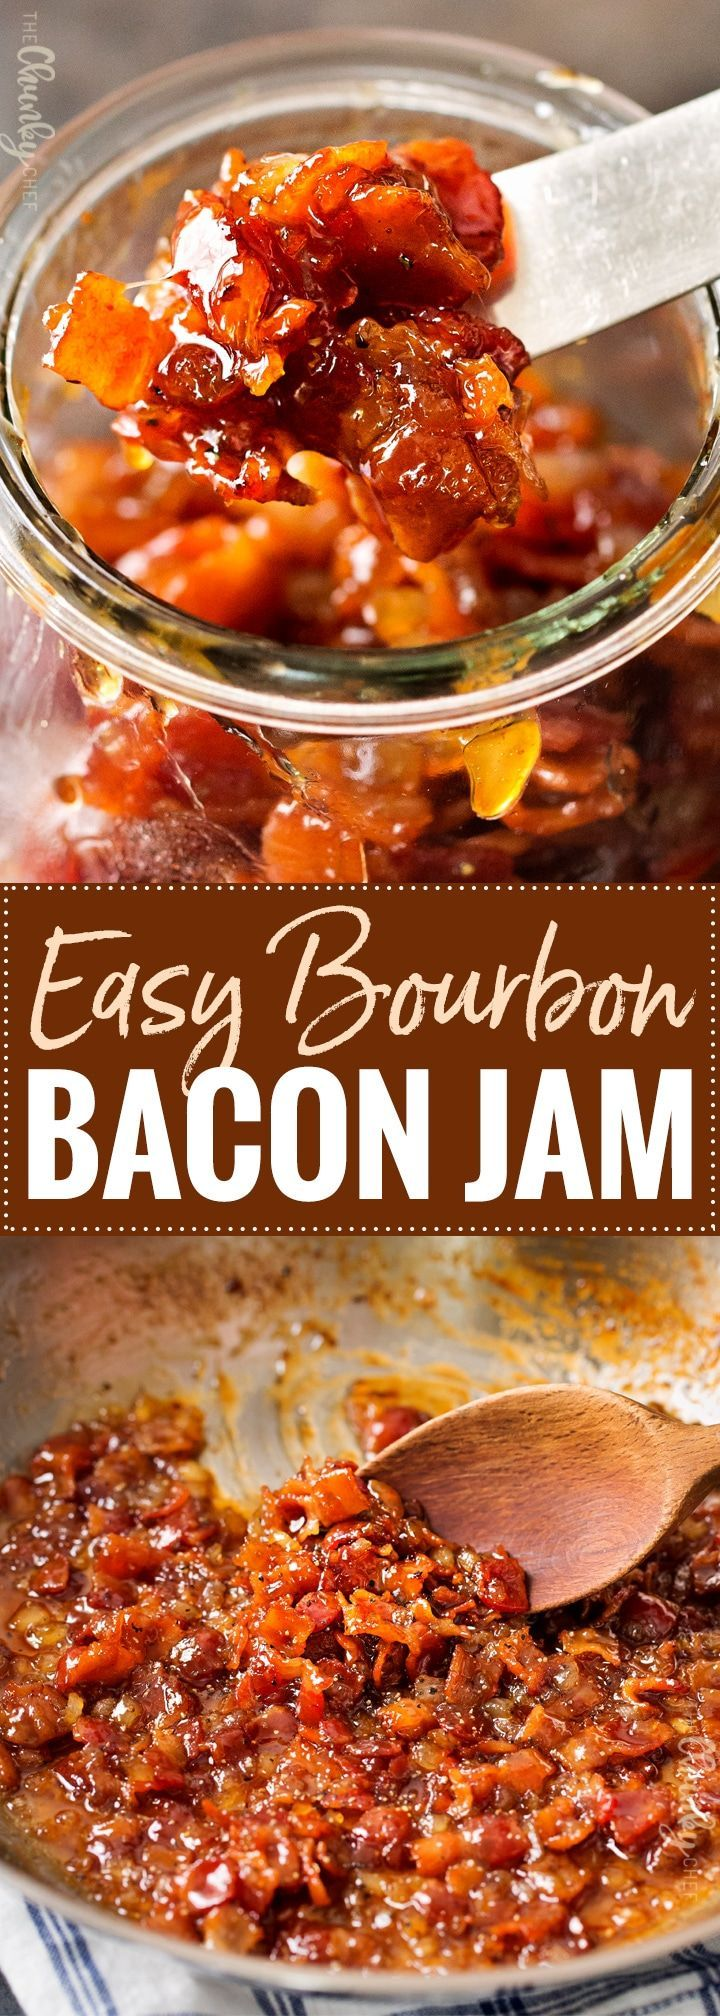 Homemade Bourbon Bacon Jam | Made in one skillet, in less than 30 minutes, this bacon jam get a boozy kick from smooth bourbon.  Perfect to spread on just about anything, and it also makes a great gift! | http://thechunkychef.com